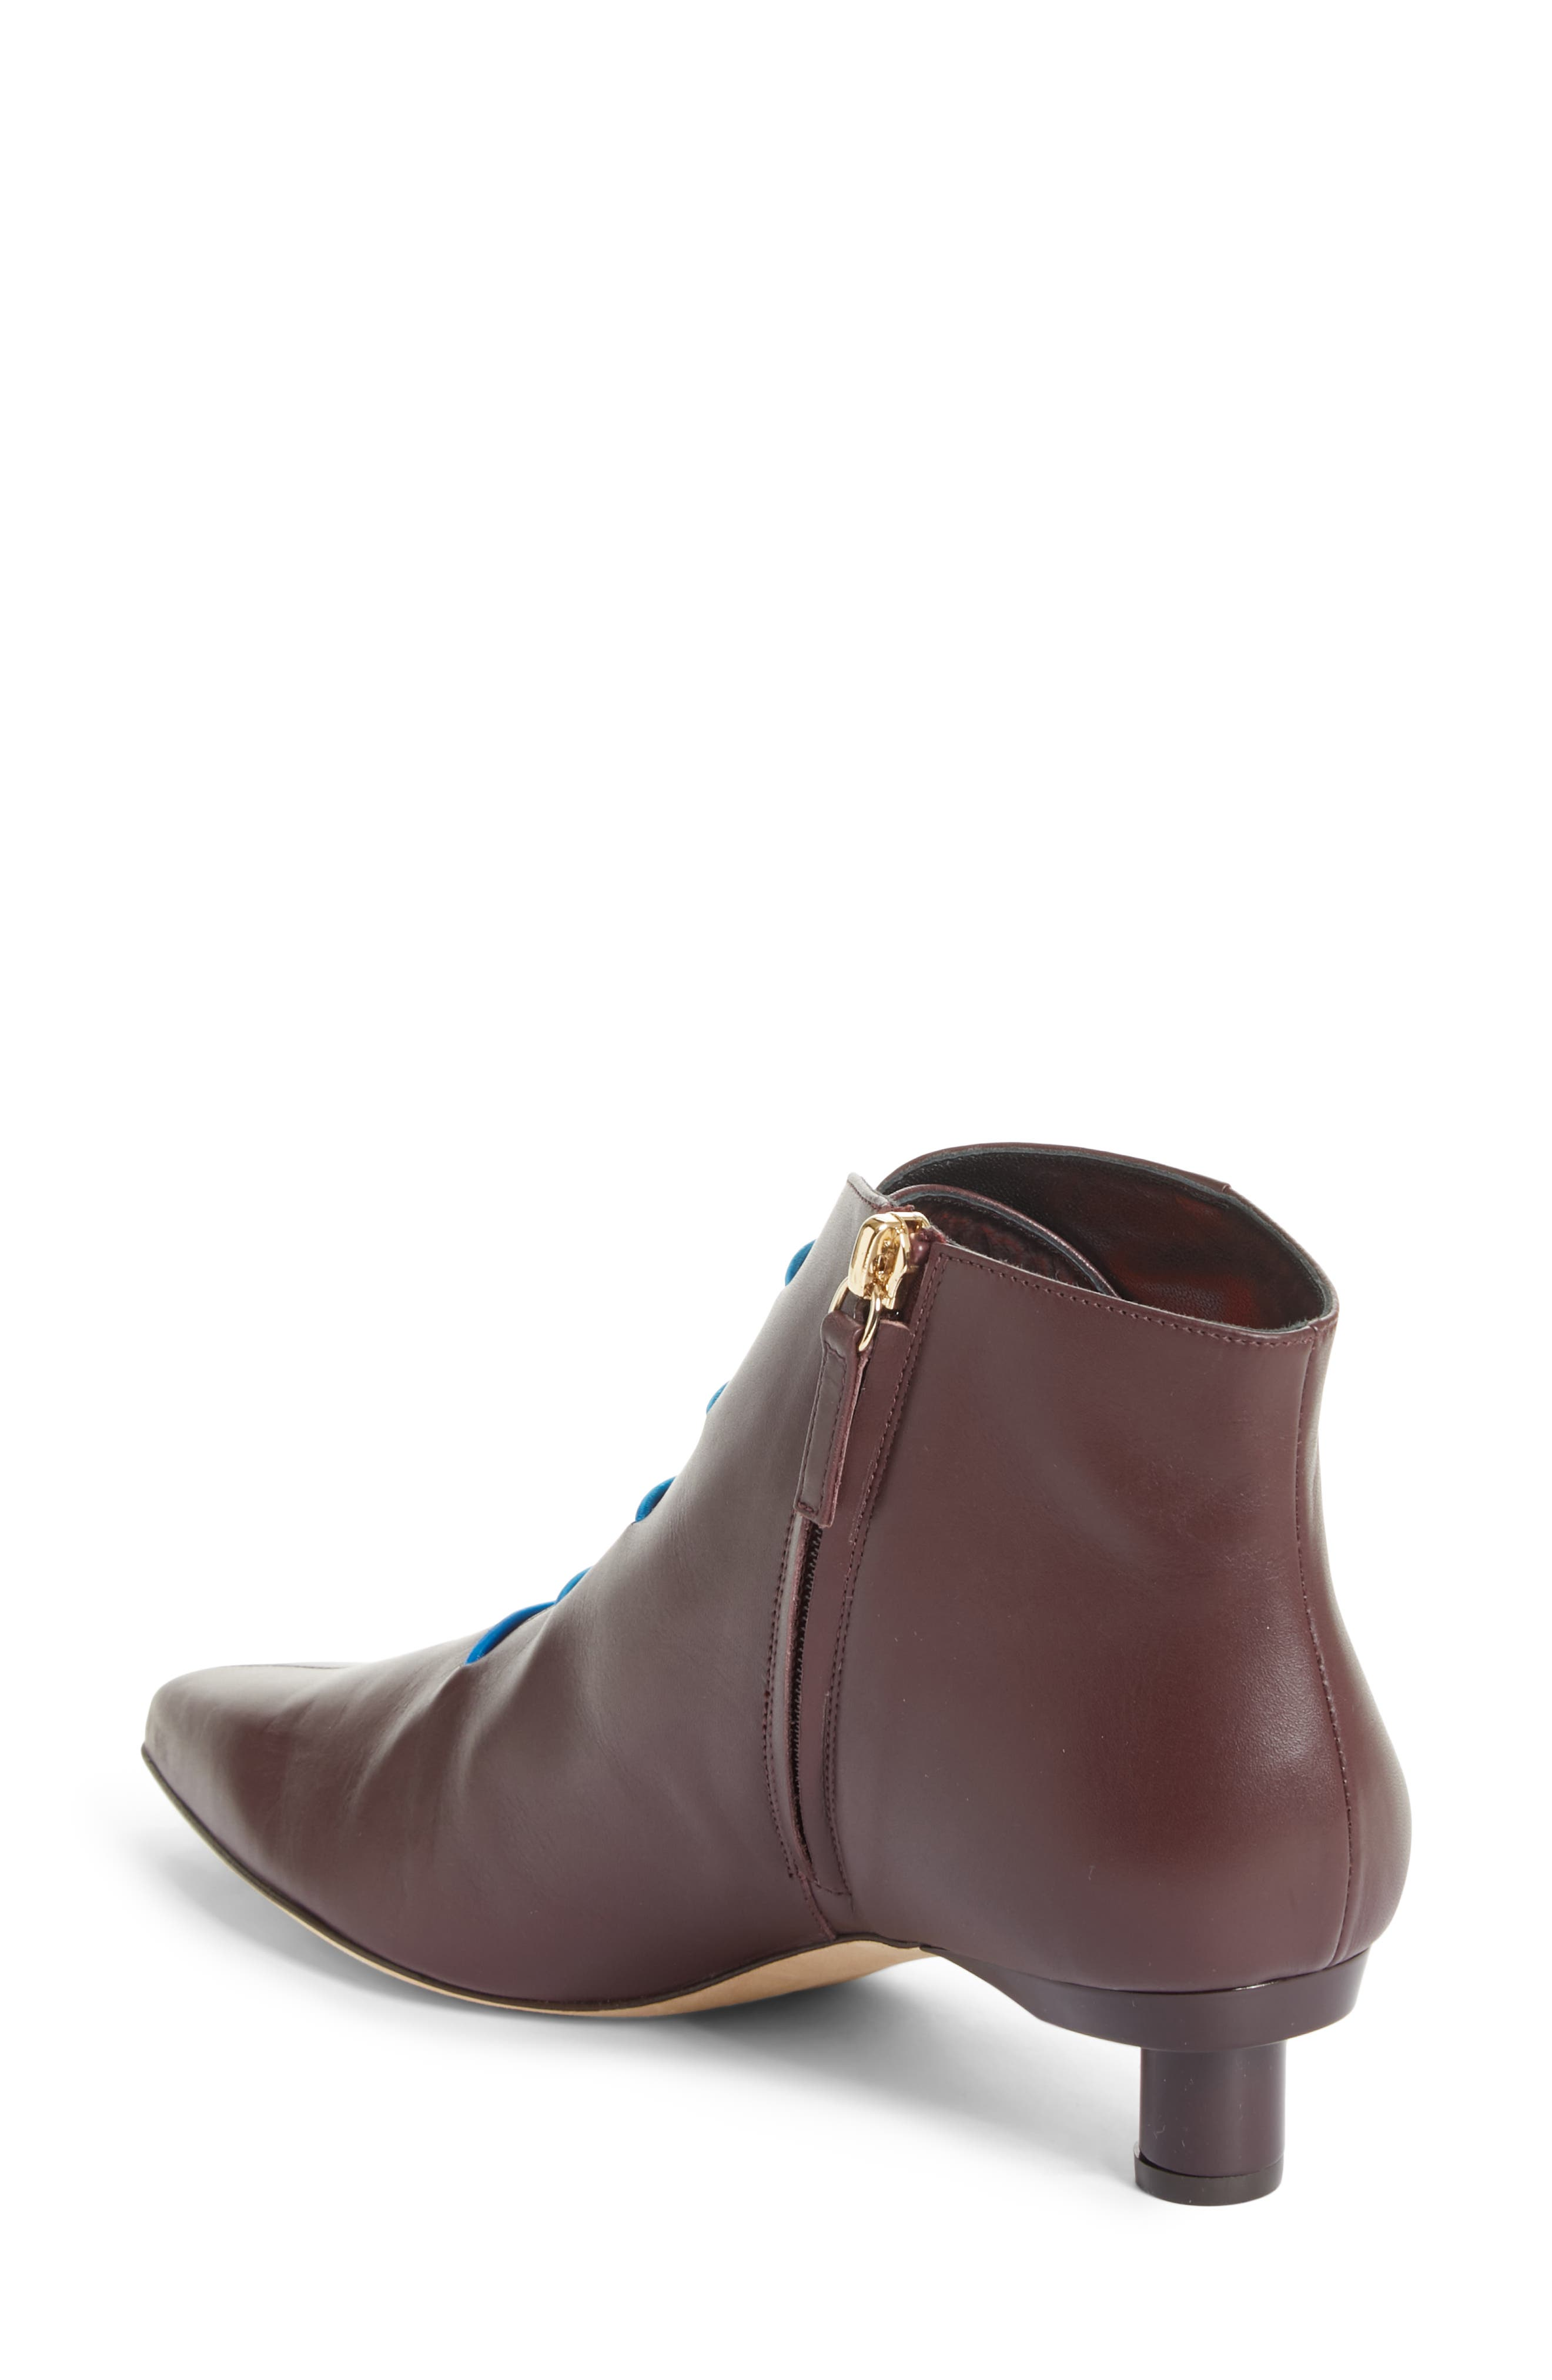 Asher Bootie,                             Alternate thumbnail 2, color,                             930